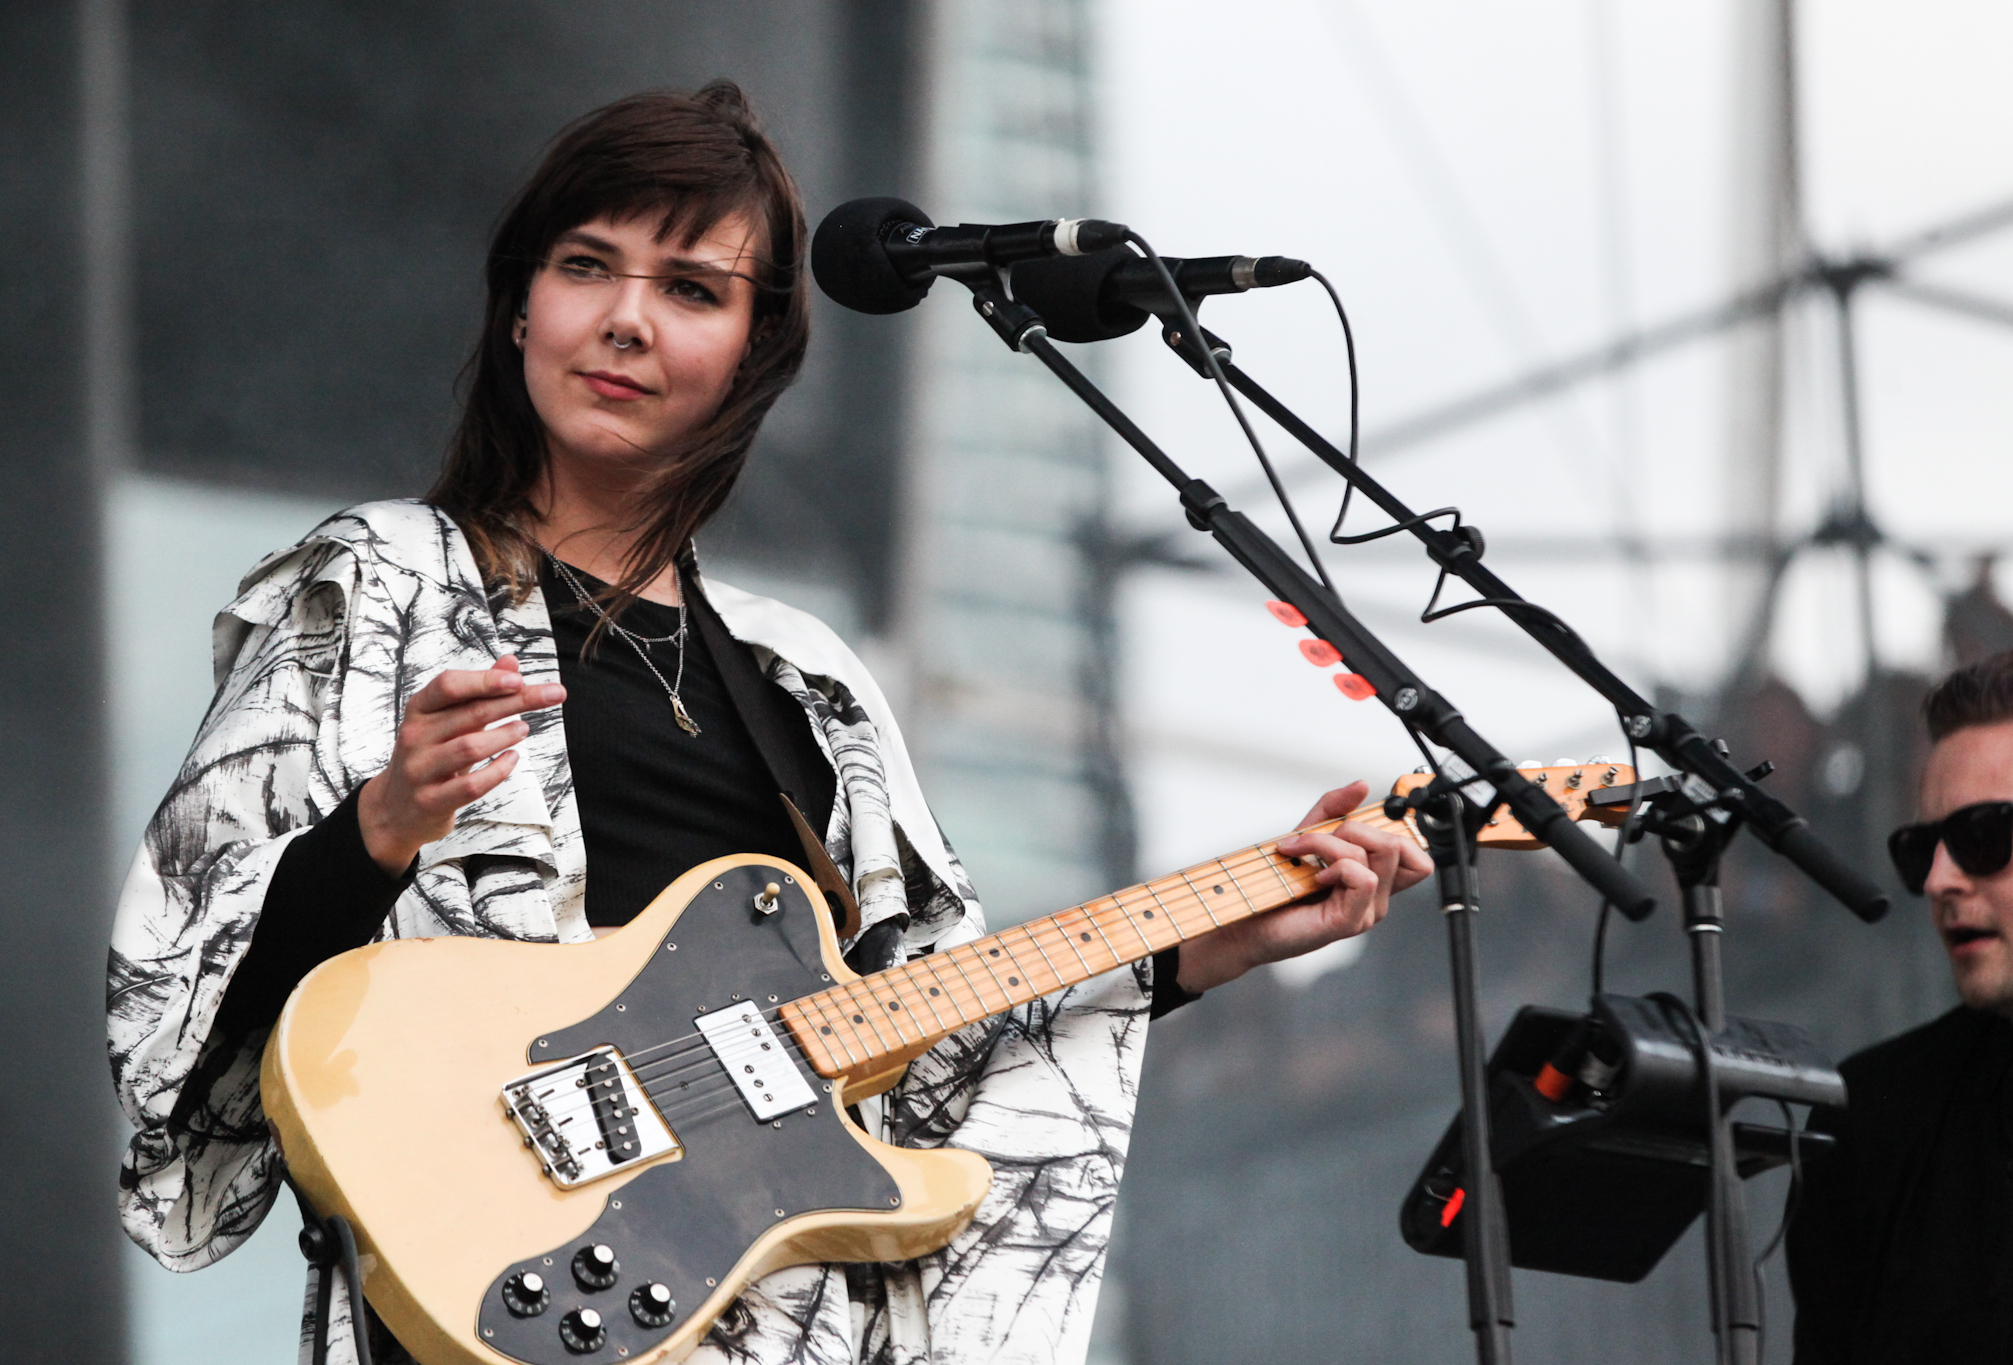 Of Monsters and Men hit the stage in Grant Park on the final day of Lollapalooza on August 2, 2015.